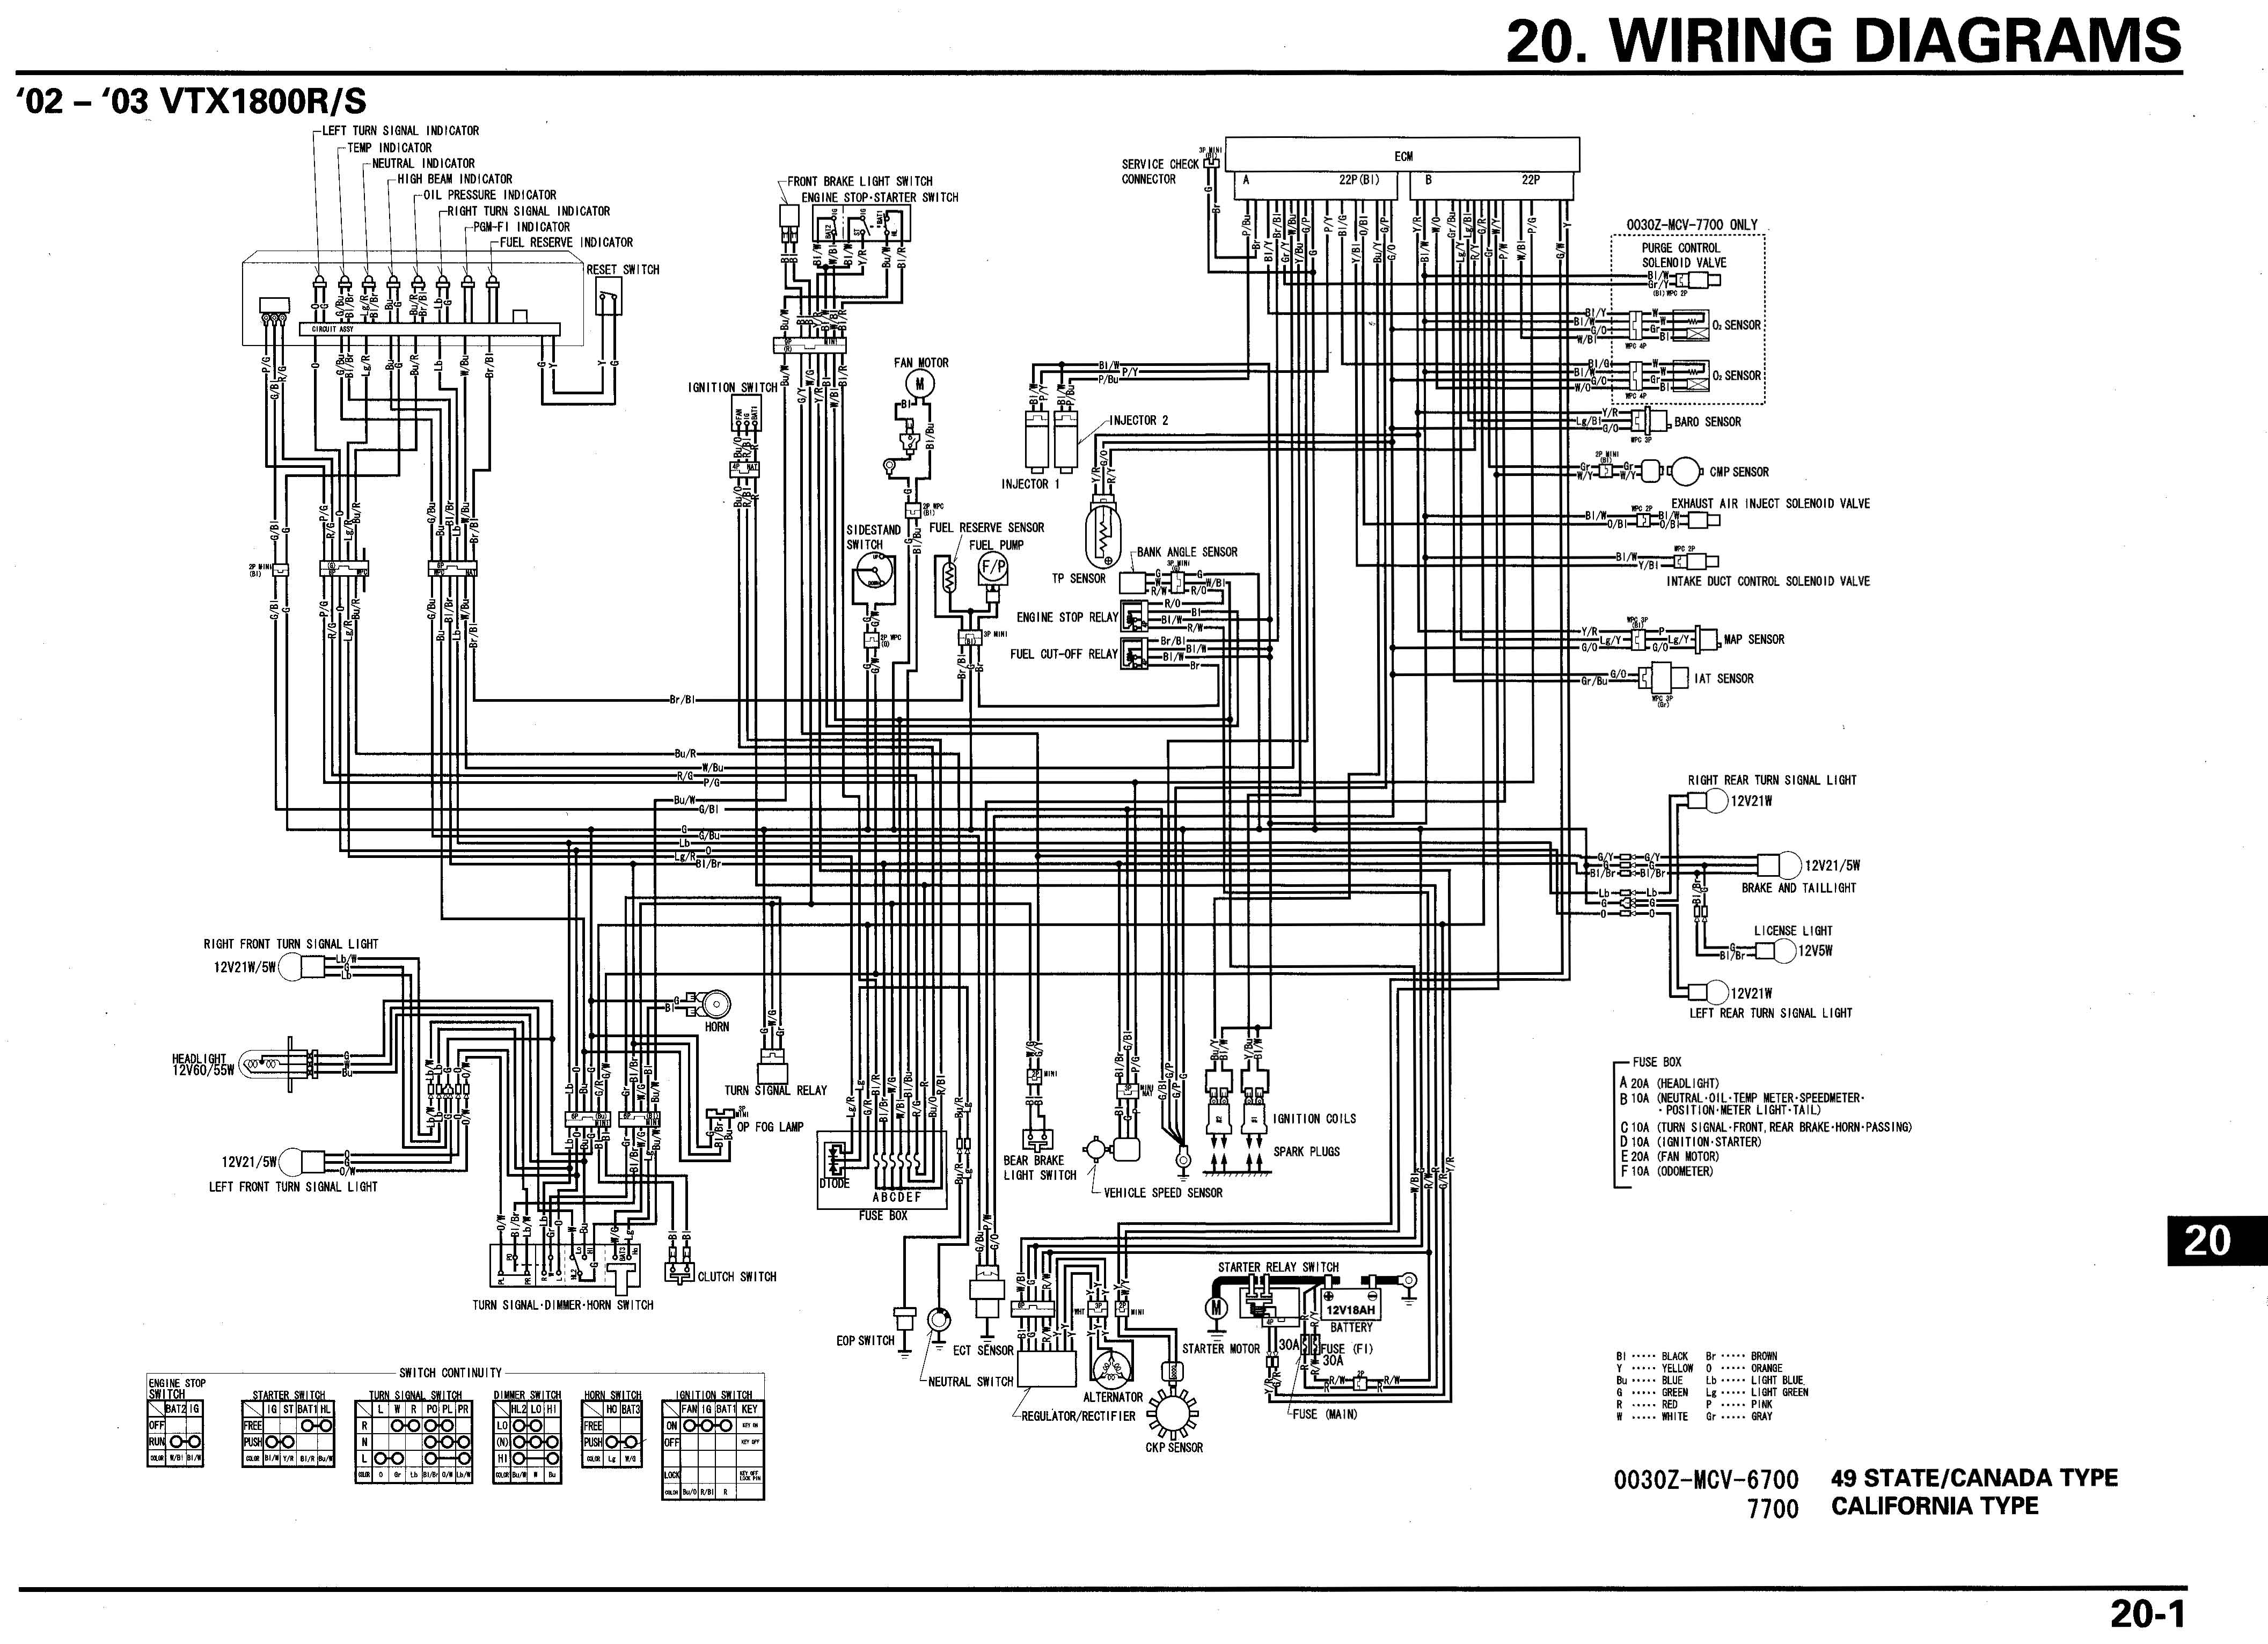 vtx 1300 wiring diagram vtx image wiring diagram motorcycle wire schematics bareass choppers motorcycle tech pages on vtx 1300 wiring diagram